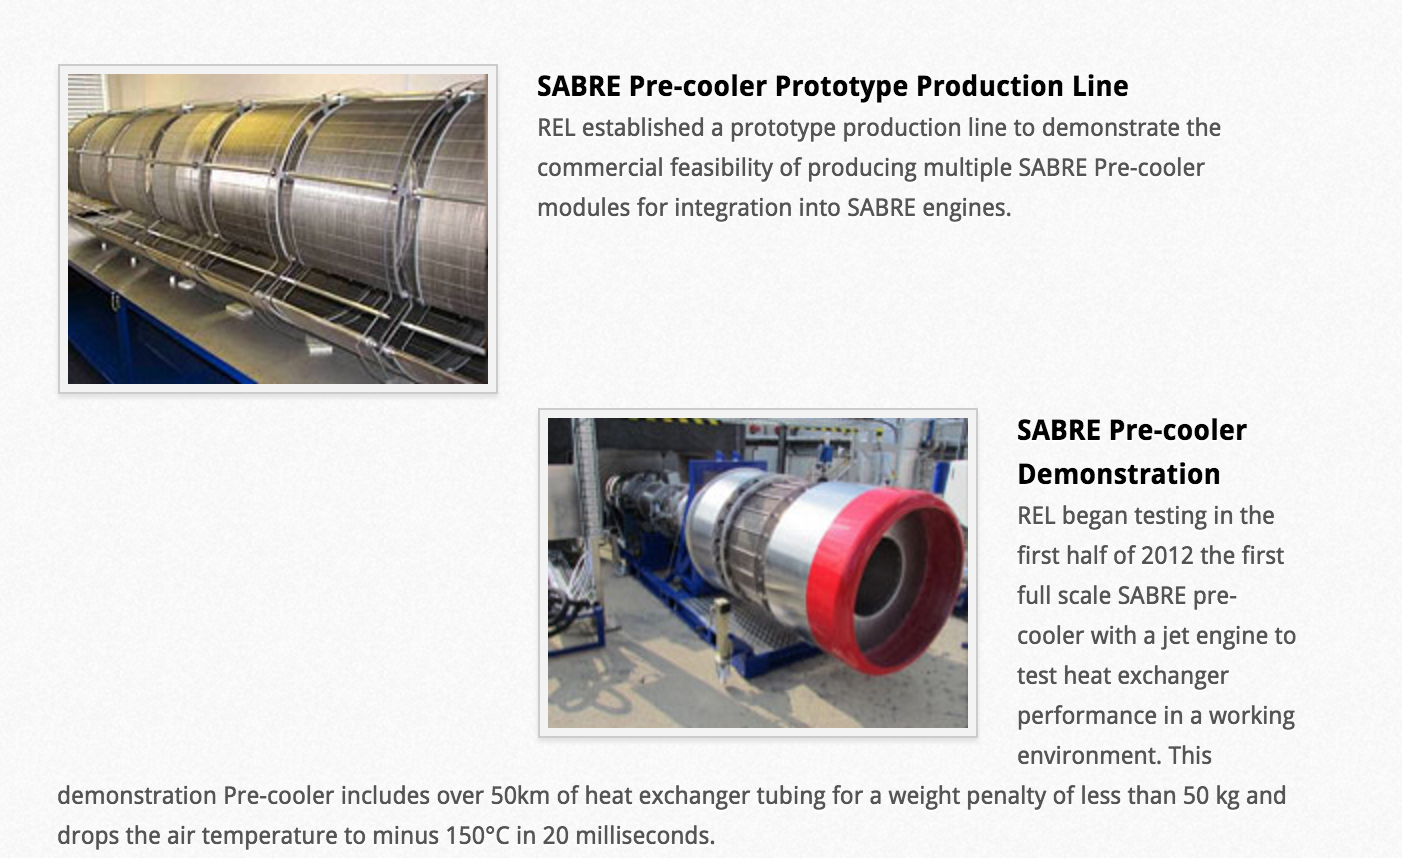 US Air Force Research will develop Skylon precooler heat exchanger suitable for flight for two